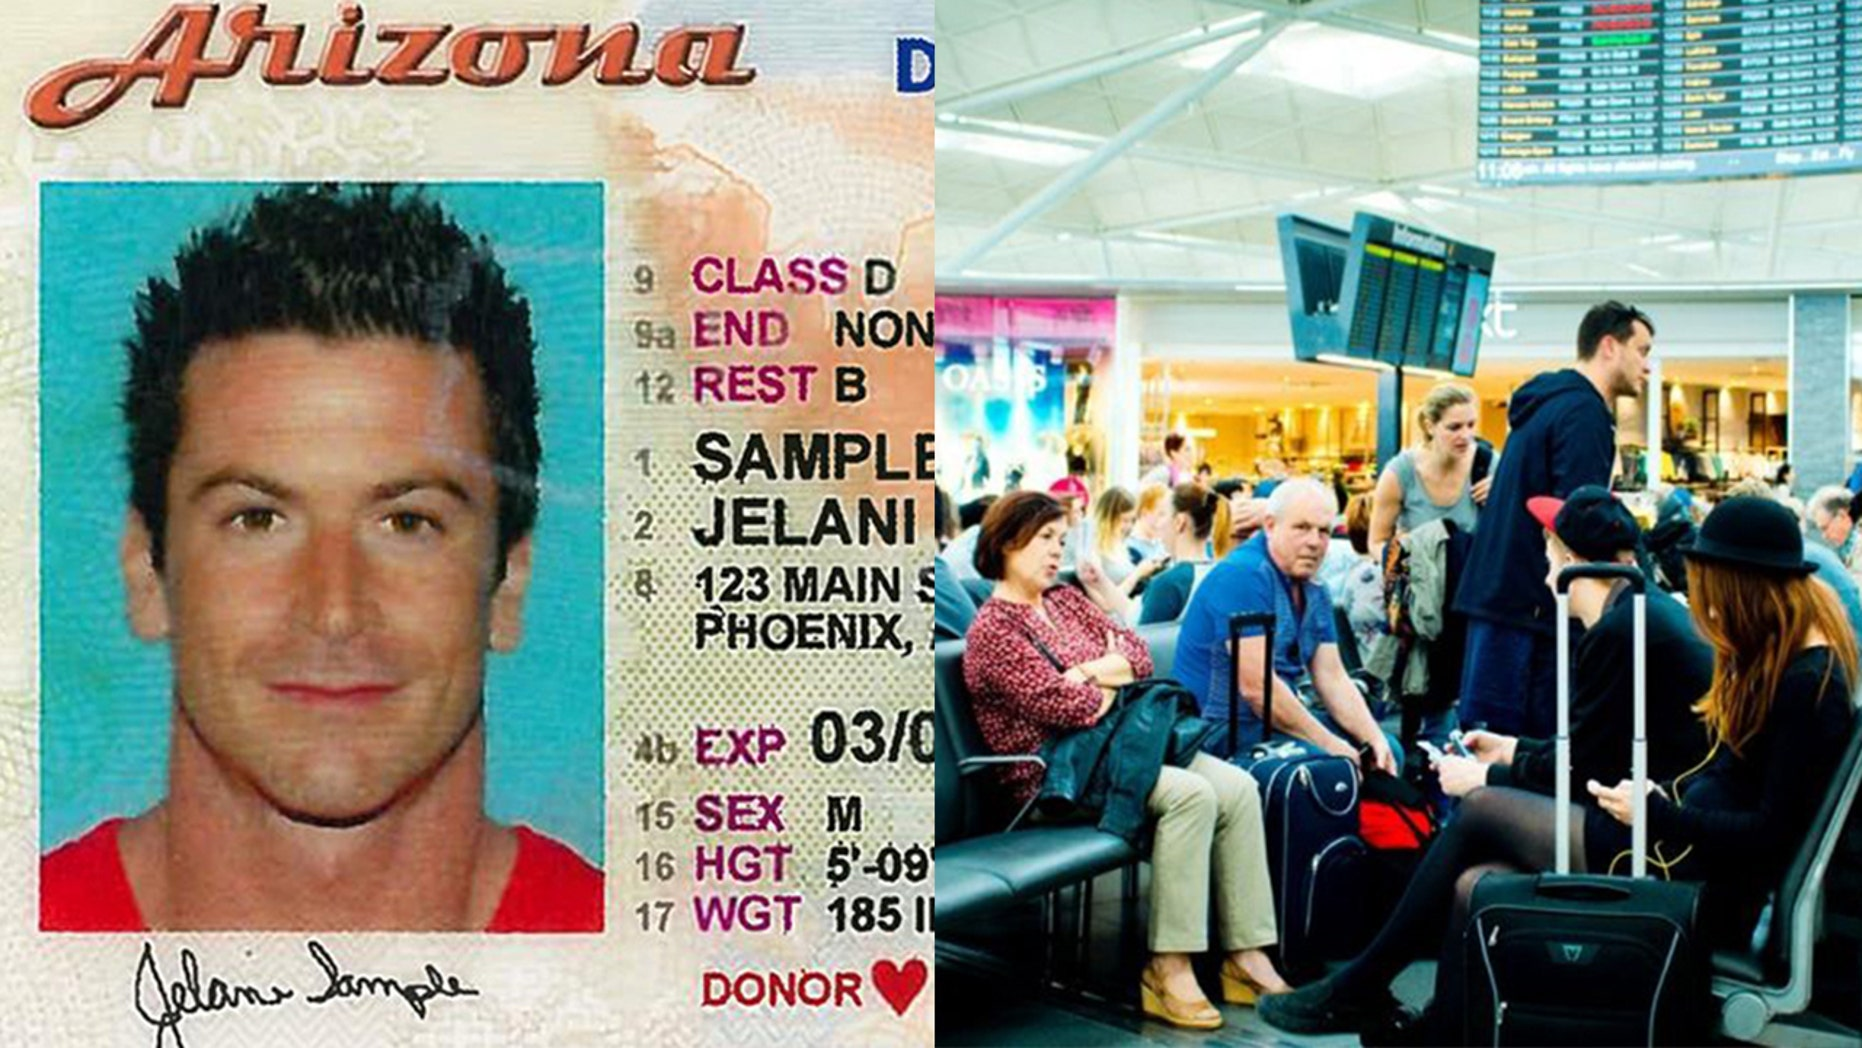 A new law to take effect in October 2020 will mandate that Arizona residents traveling by air carry a Voluntary Travel ID.